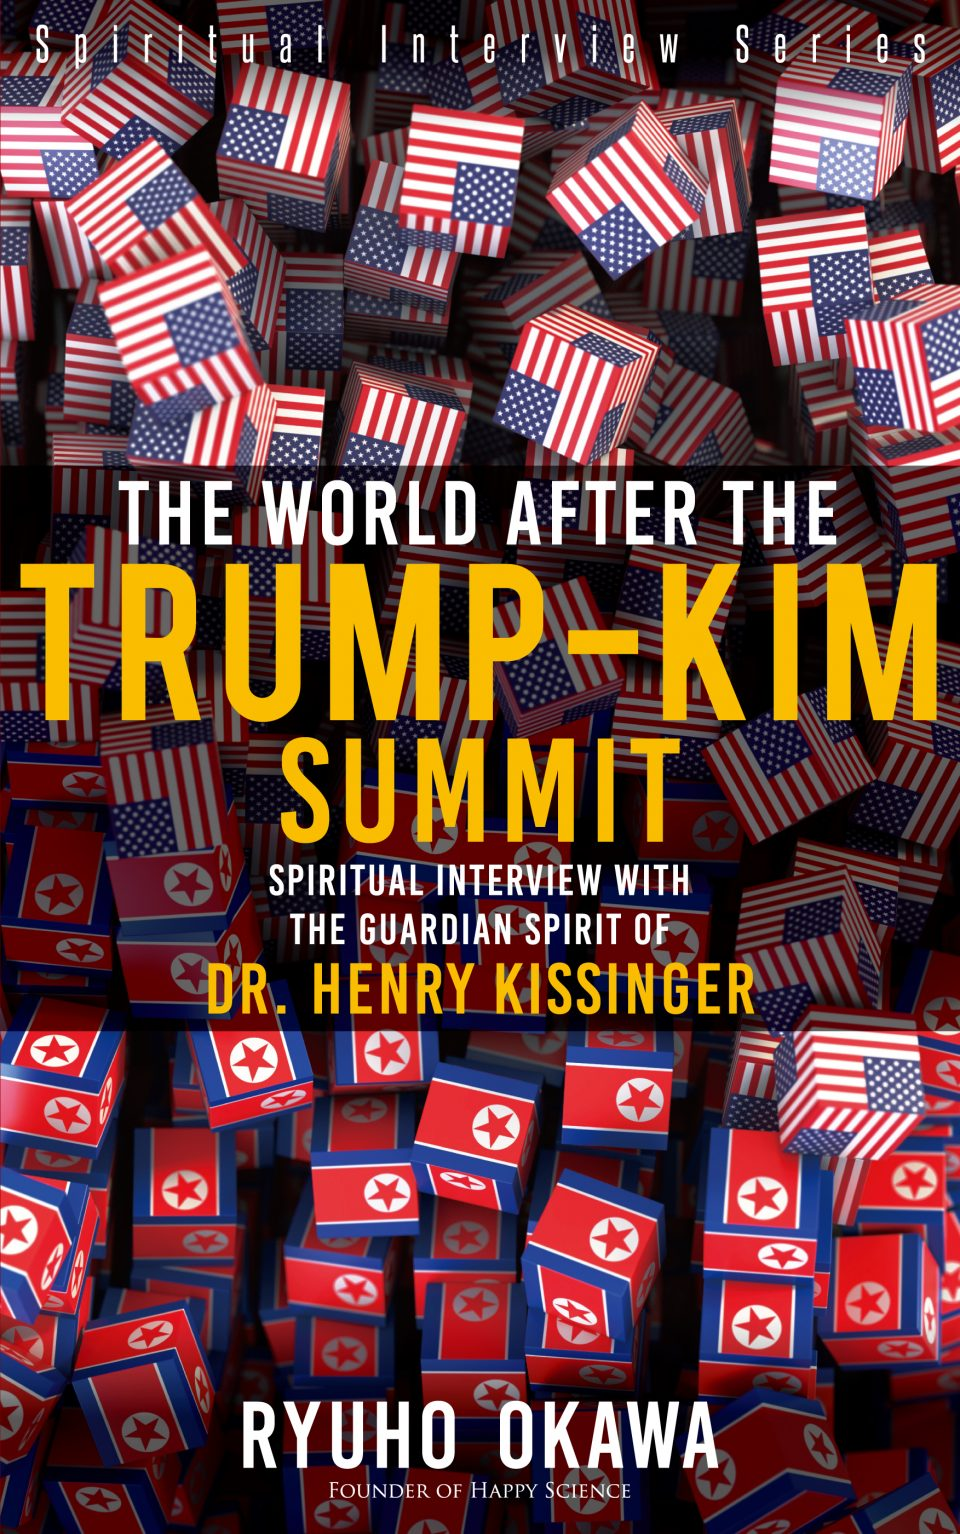 The World After the Trump-Kim Summit: Spiritual Interview with the Guardian Spirit of Dr. Henry Kissinger is out now!